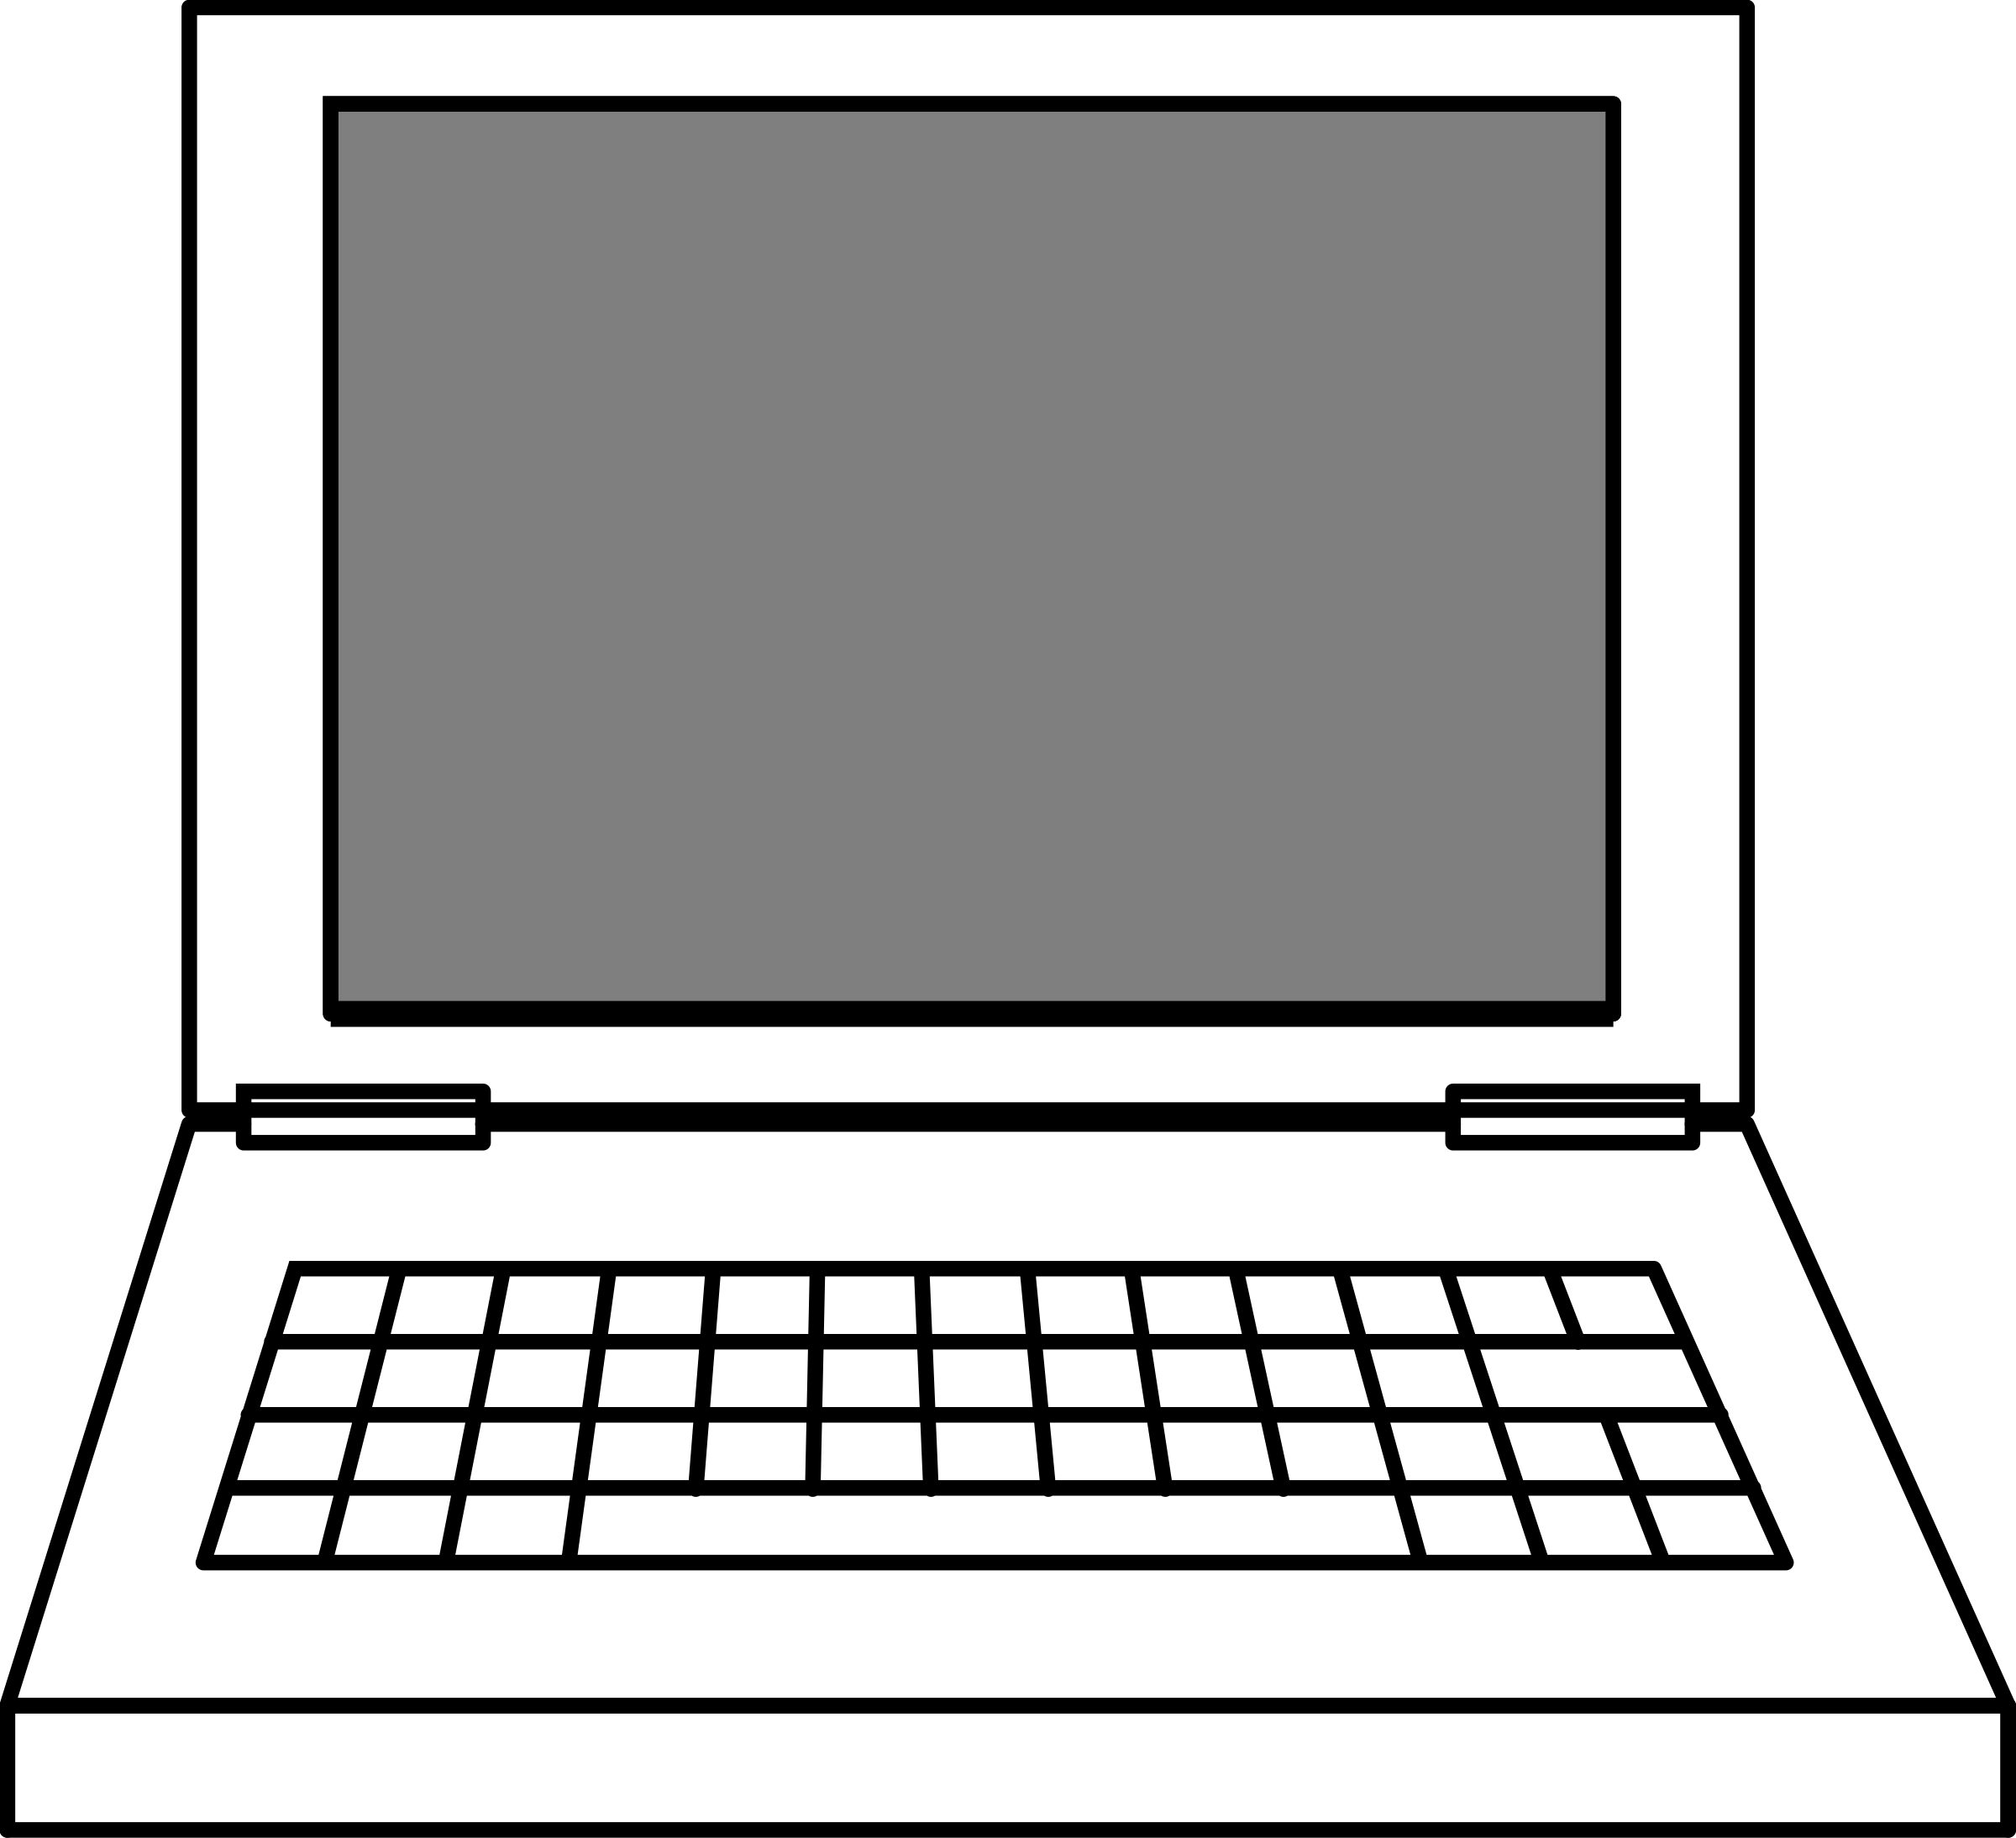 Drawing computers easy. Transparent computer picture